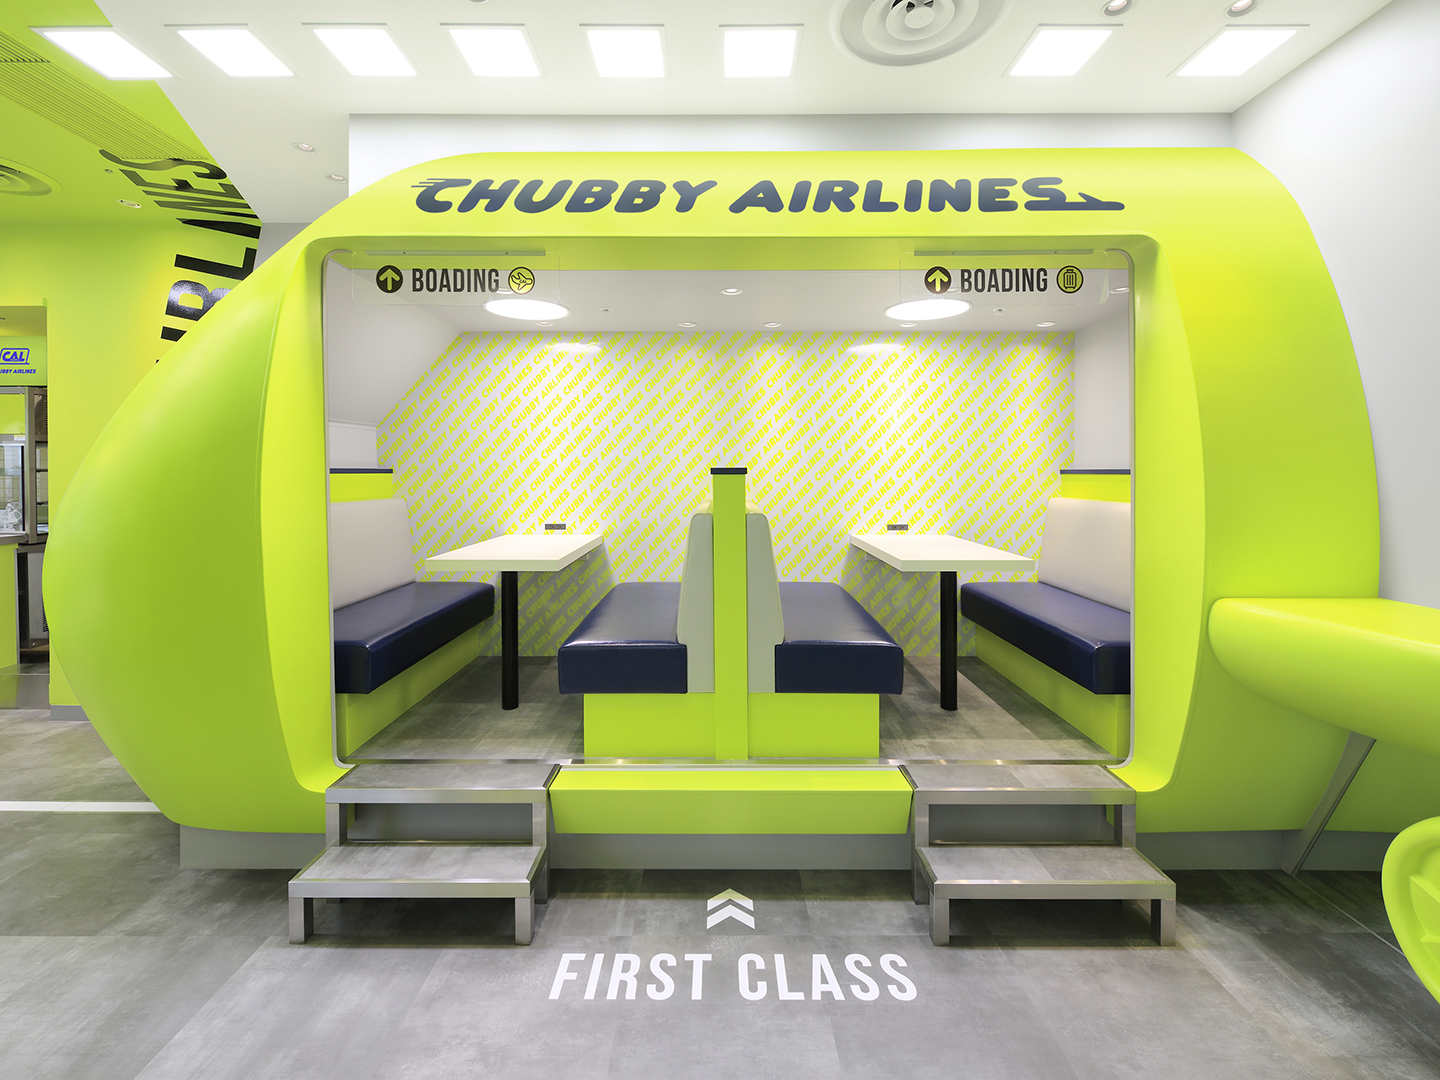 『CHUBBY AIRLINES』内観イメージ